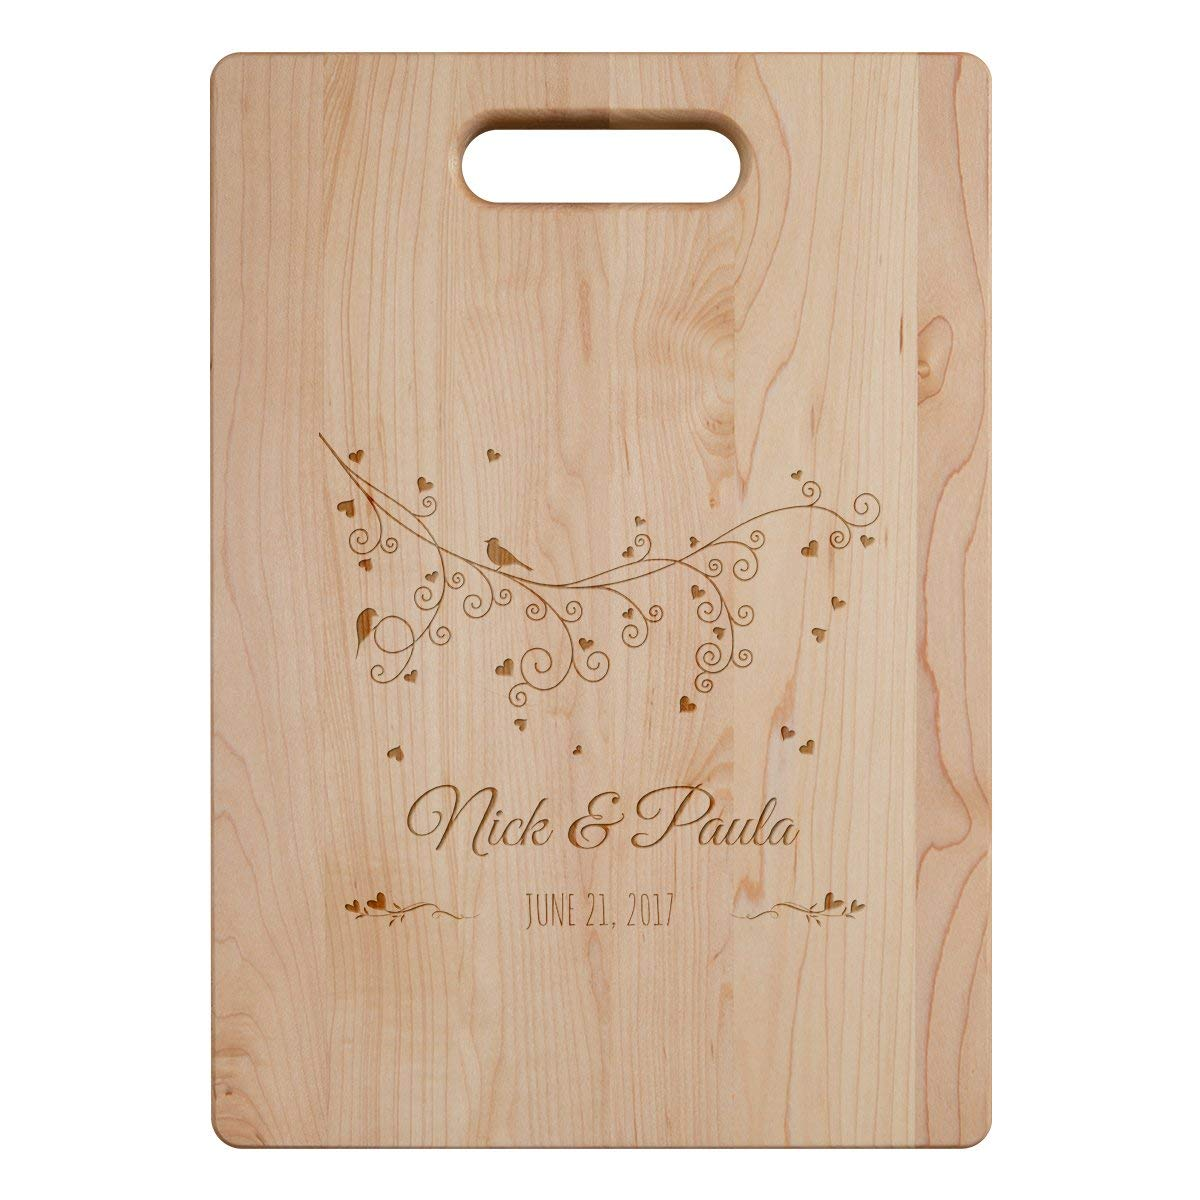 Personalized Cutting Board - Love Birds - Custom Laser Engraved with Your Name/Date, Maple, Large